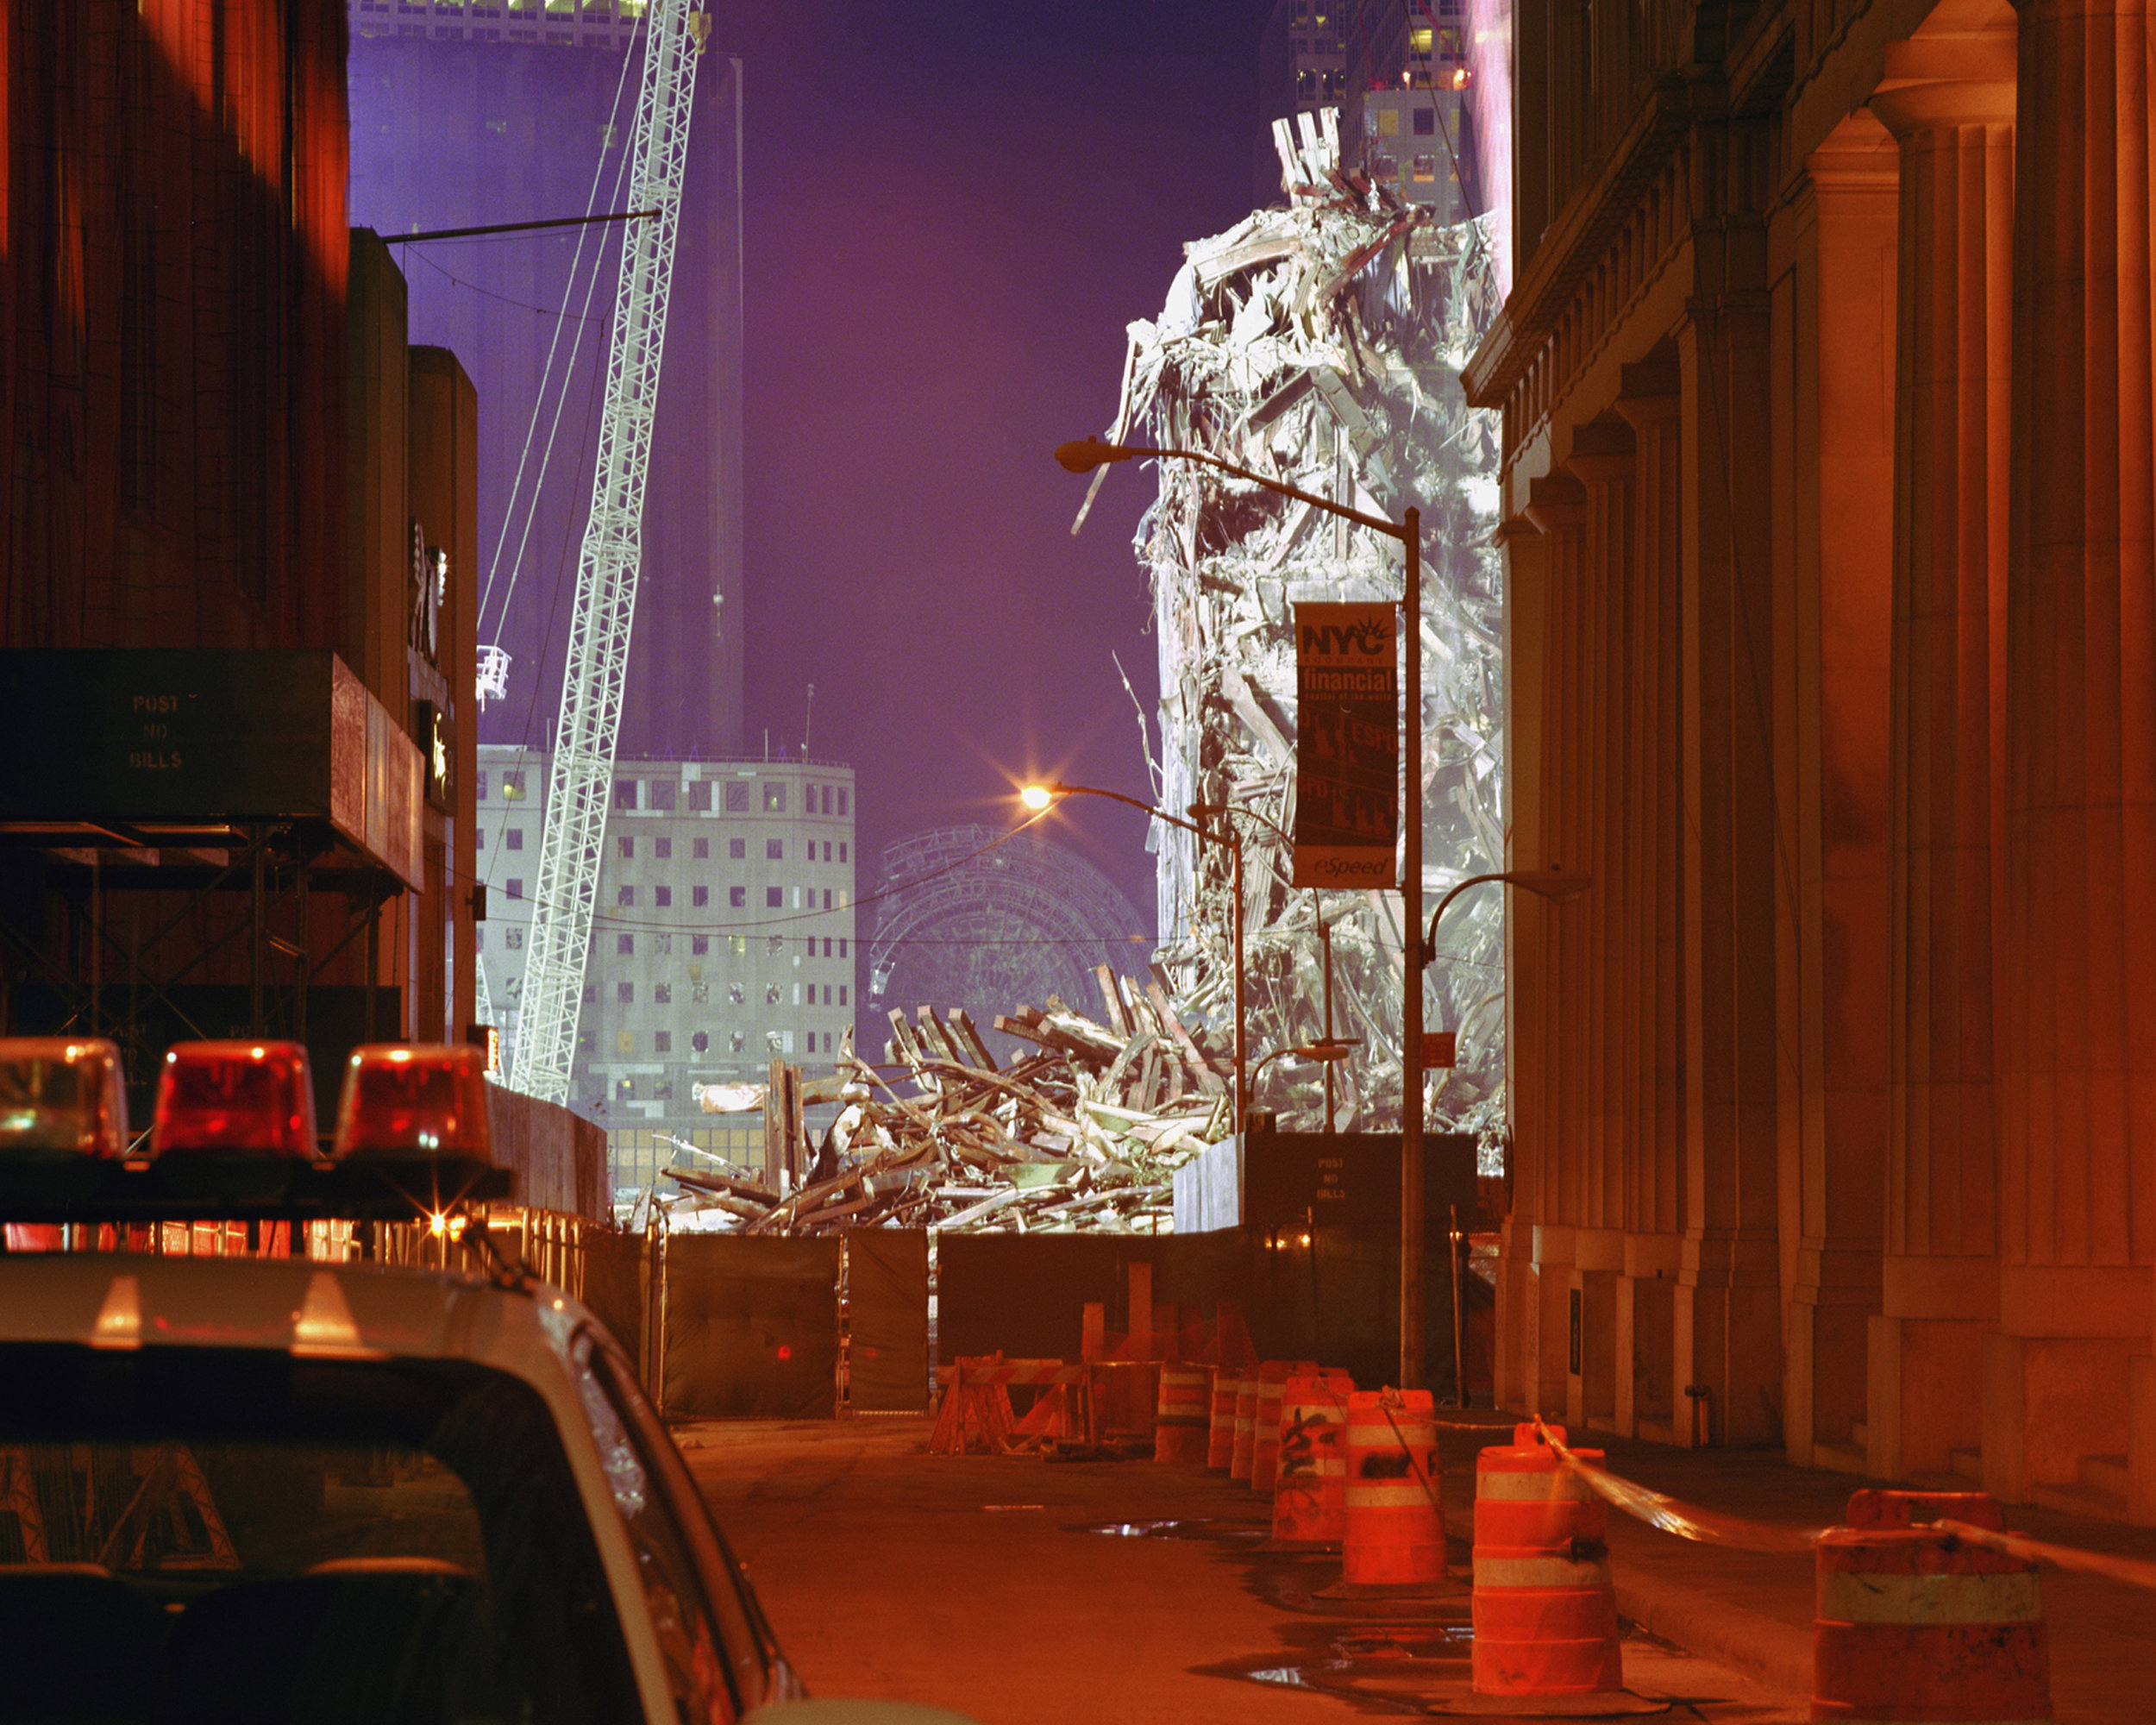 Connie Samaras,  Angelic States - Events Sequence: NY Financial District, WTC November , 2001  Digital pigment print, 40 x 50 inches, edition of 5   Inquire